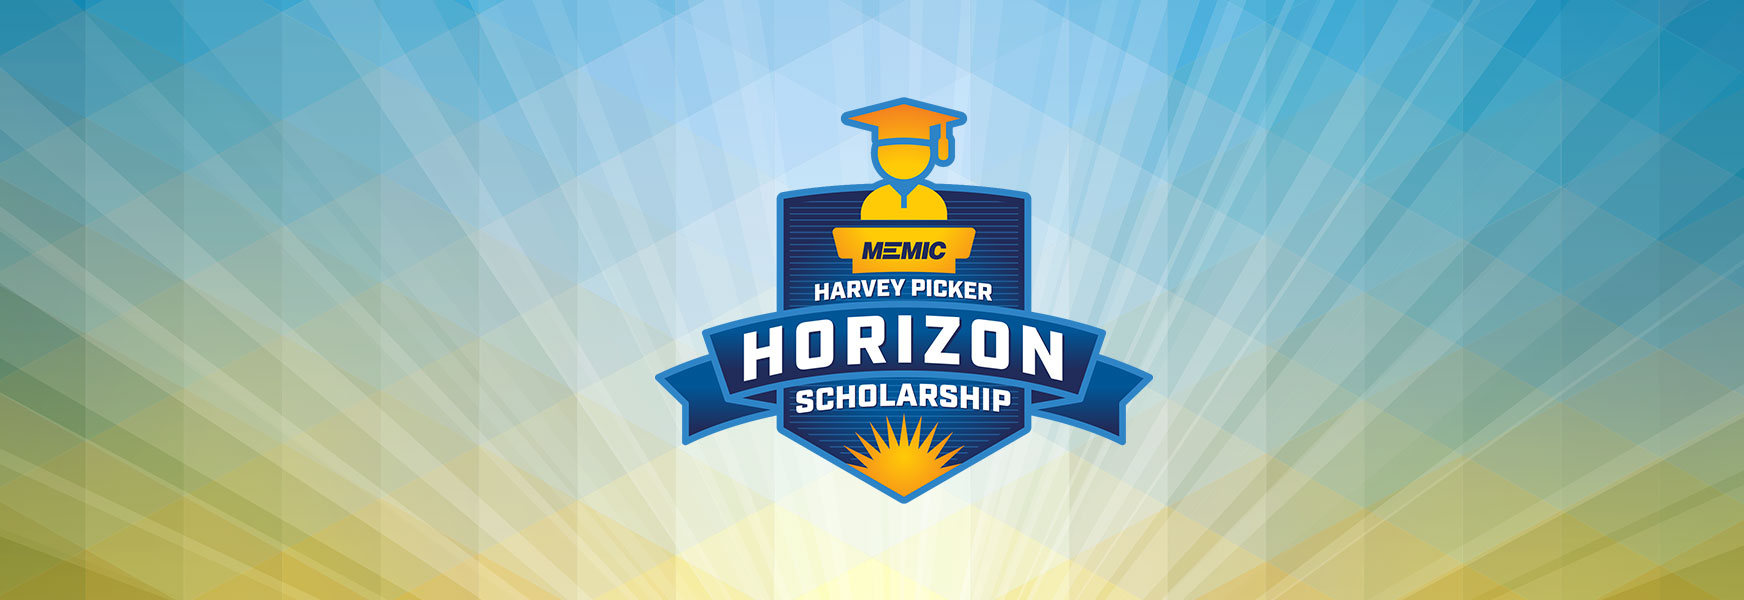 Horizon scholarship logo and graphic header